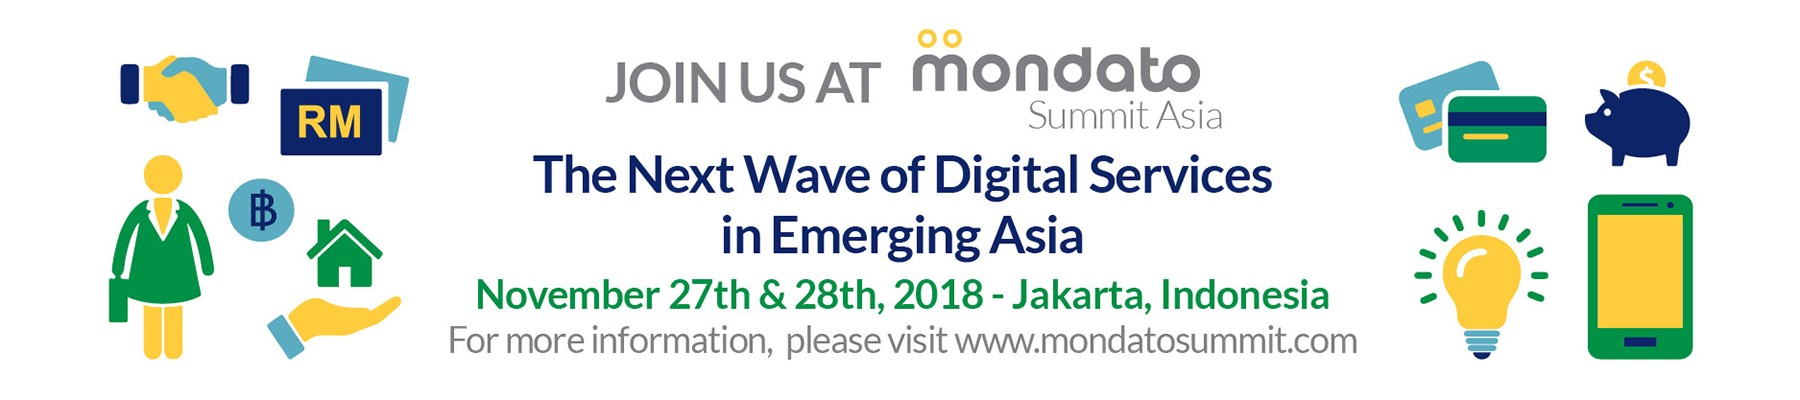 mondato summit asia 2018